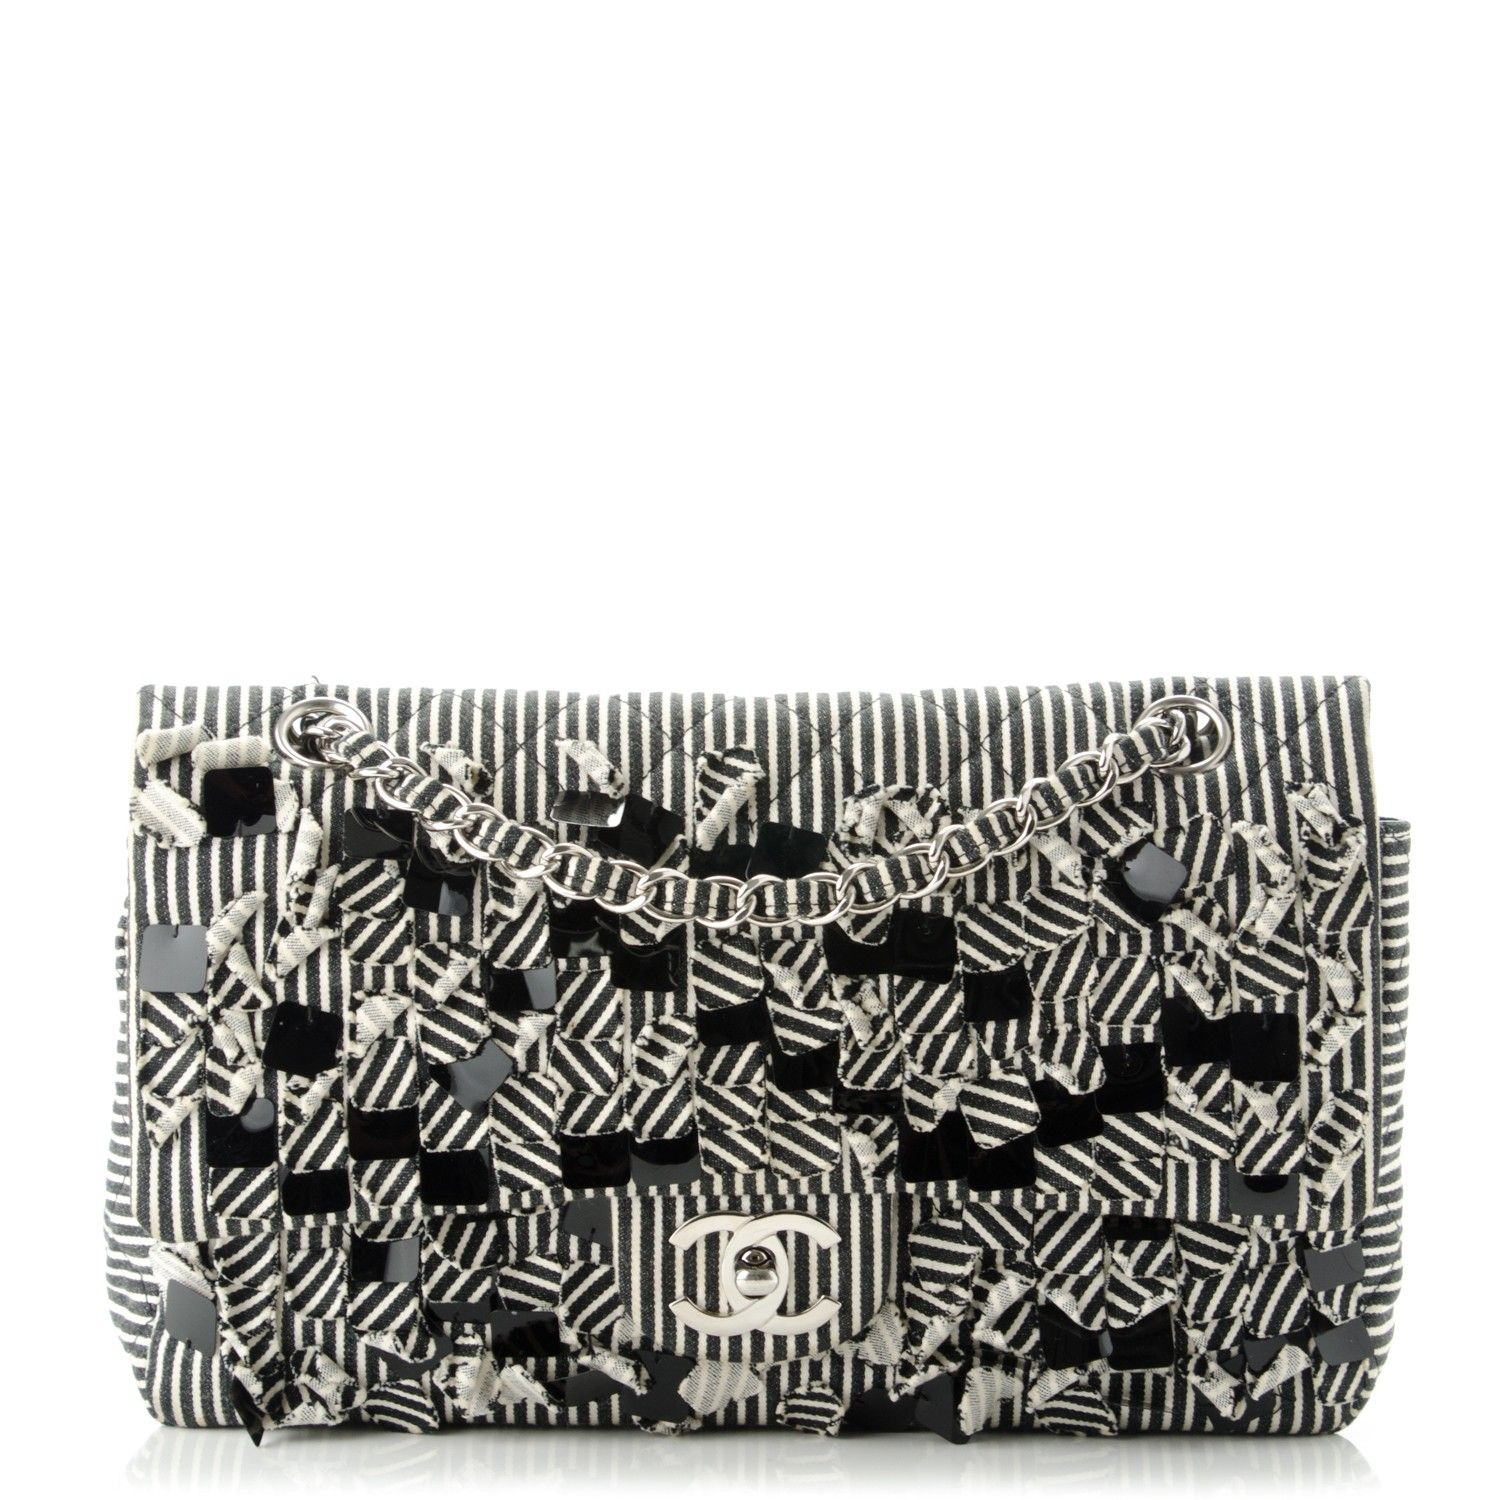 2cc6352efa24 This is an authentic CHANEL Canvas Sequin Stripe Medium Double Flap in Black  and White. This medium size flap is crafted of black and white striped  canvas.